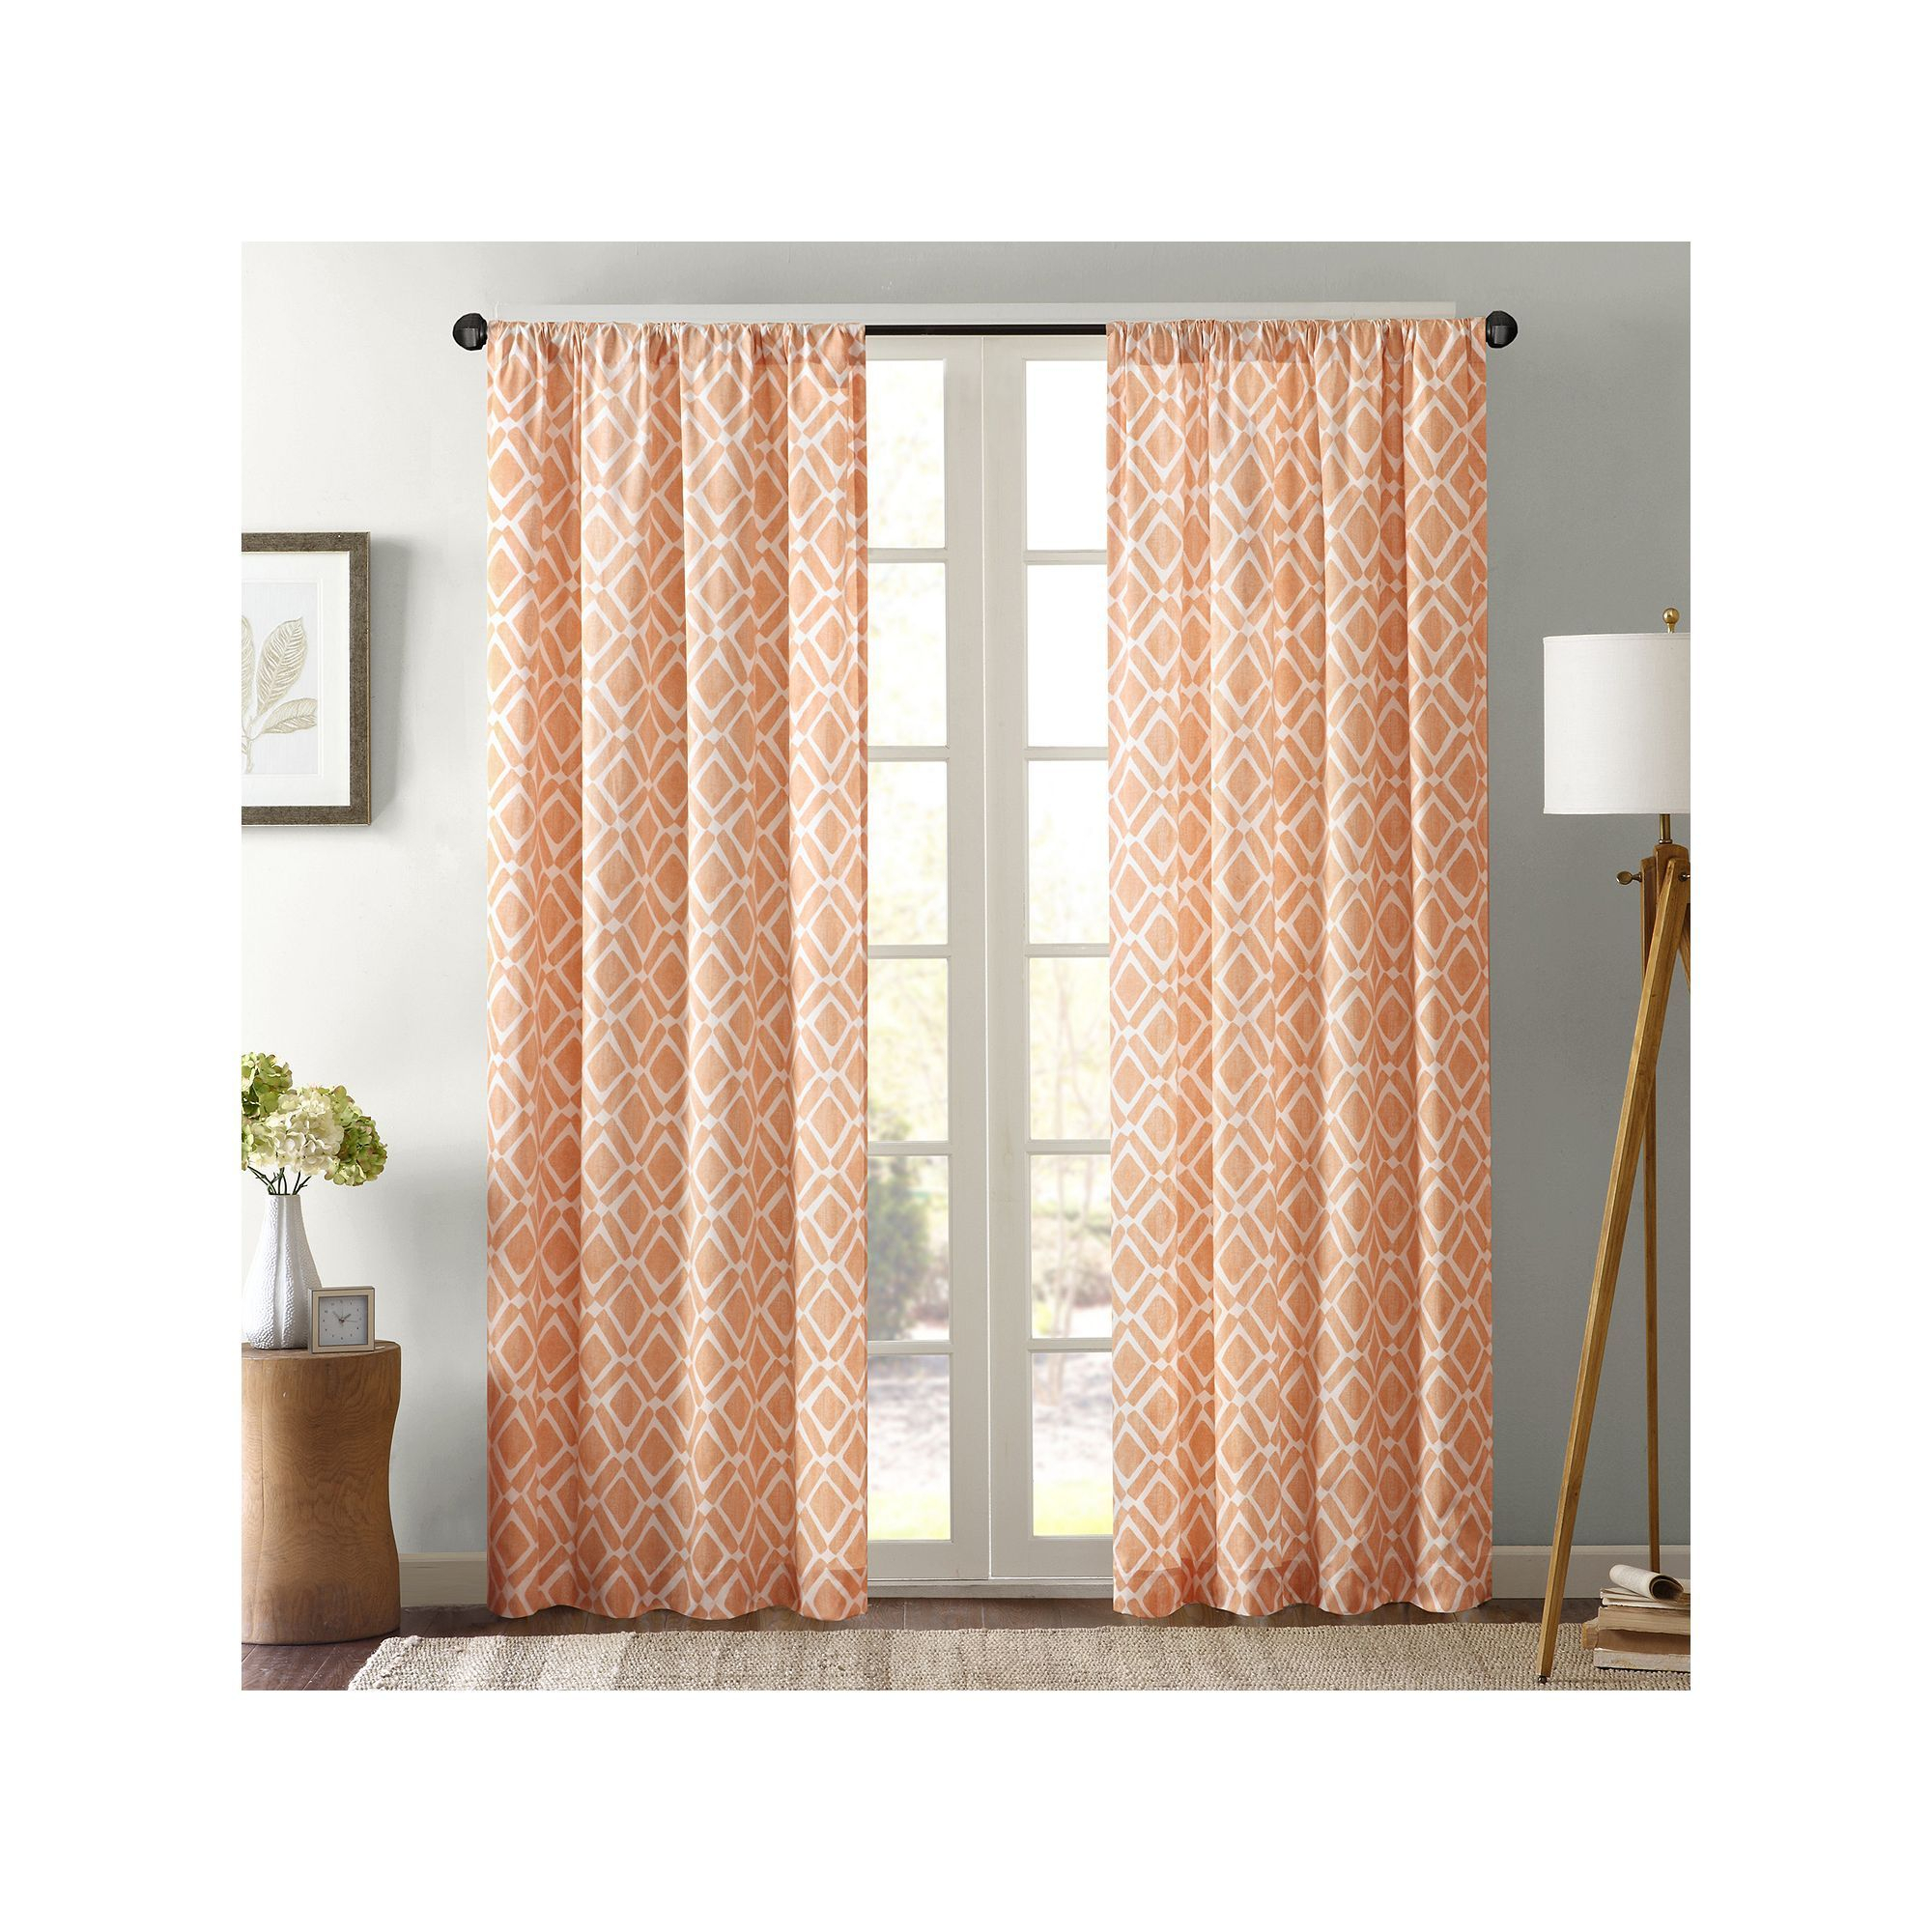 Madison Park 1 Panel Ella Window Curtain, Orange | Products Throughout Ella Window Curtain Panels (View 7 of 20)